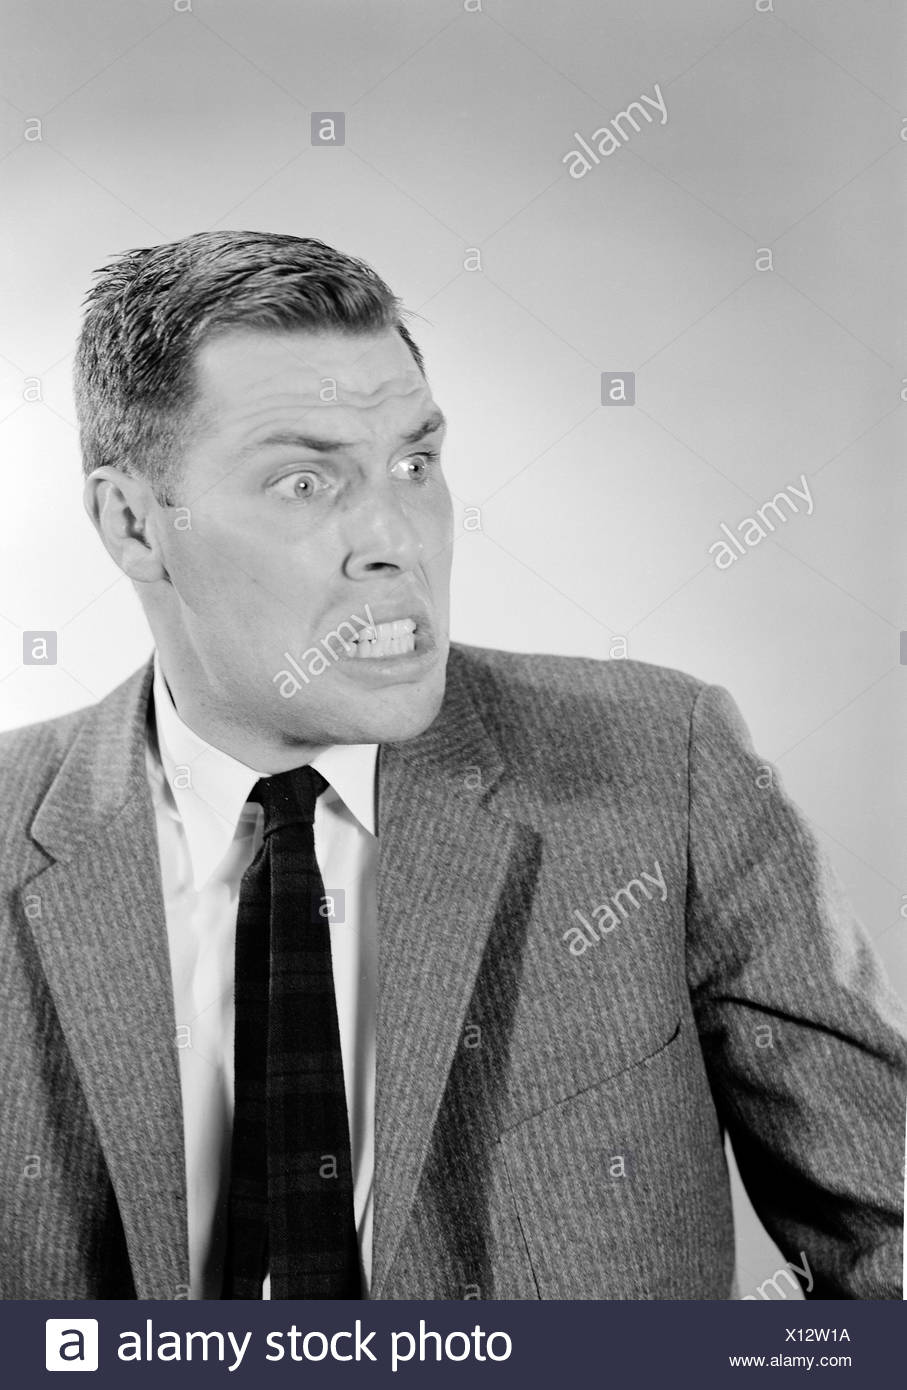 Portrait of furious young man - Stock Image